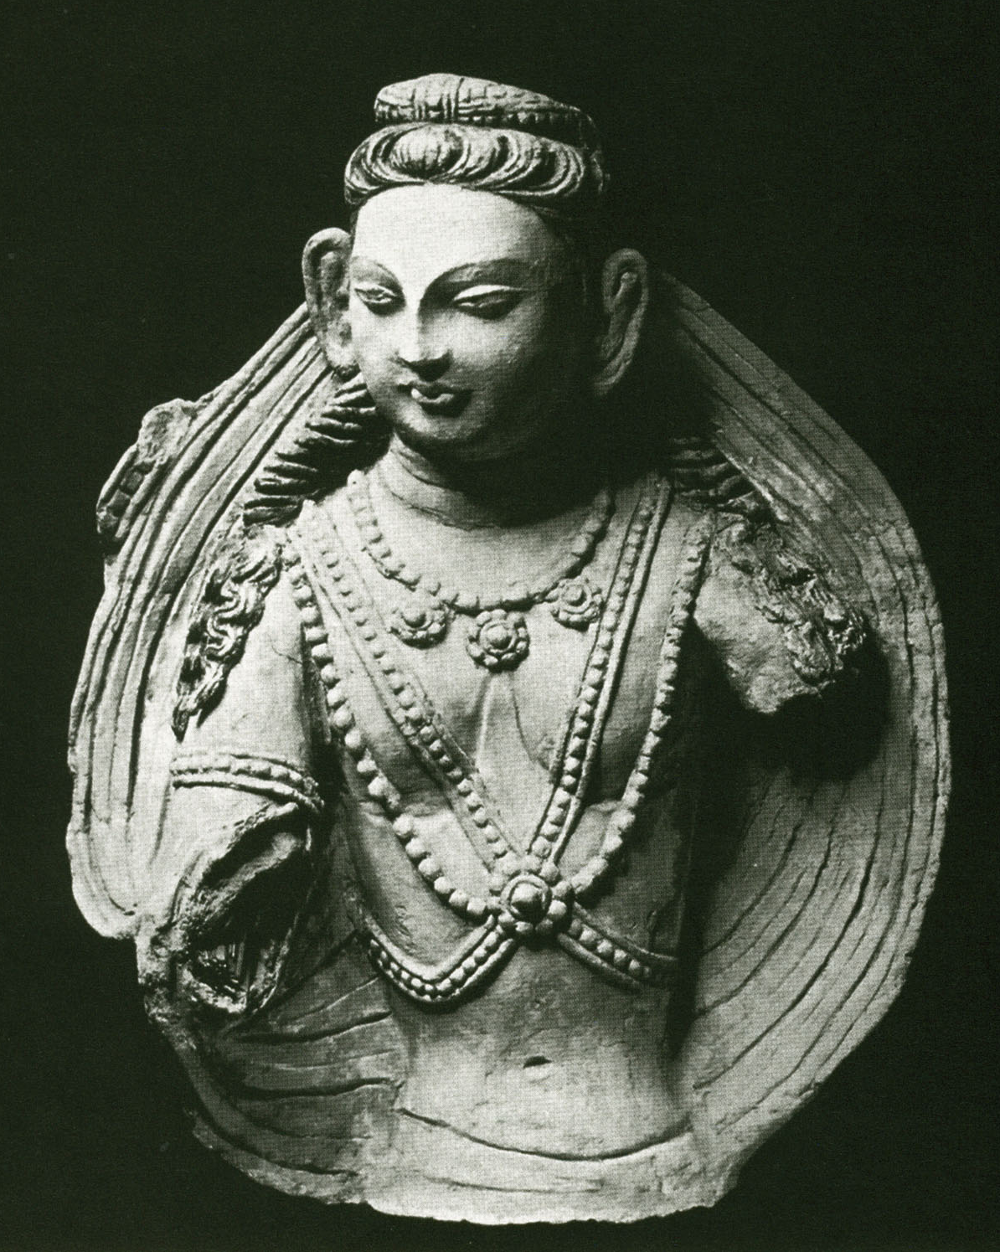 Half-Figure of a Devata